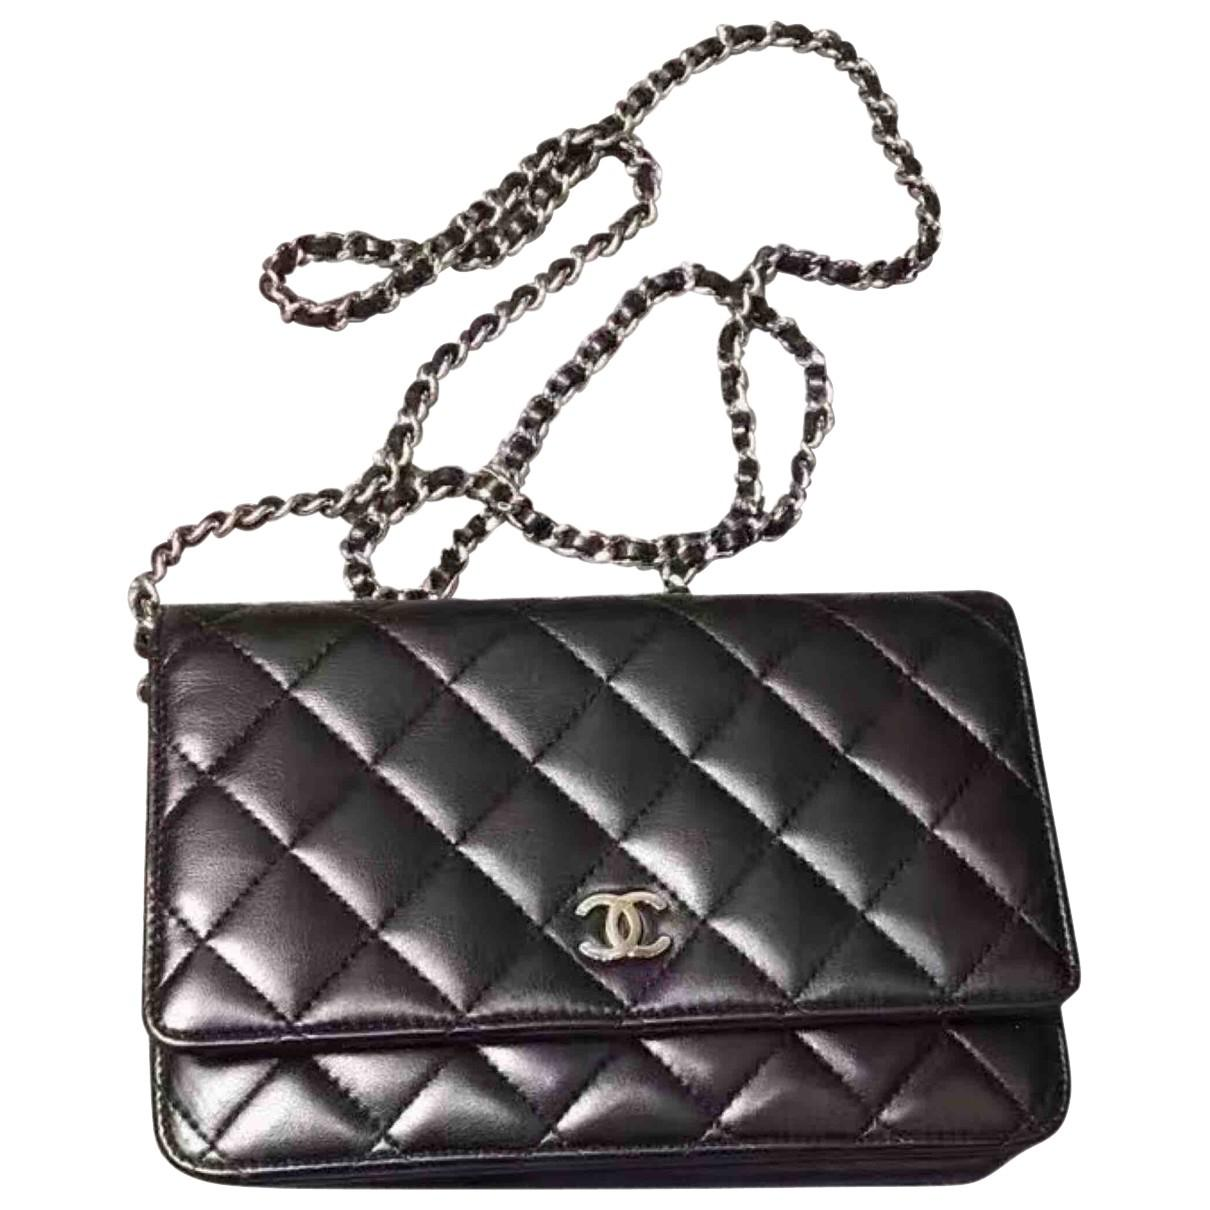 a11044bc5671 Lyst - Chanel Pre-owned Wallet On Chain Leather Crossbody Bag in Black